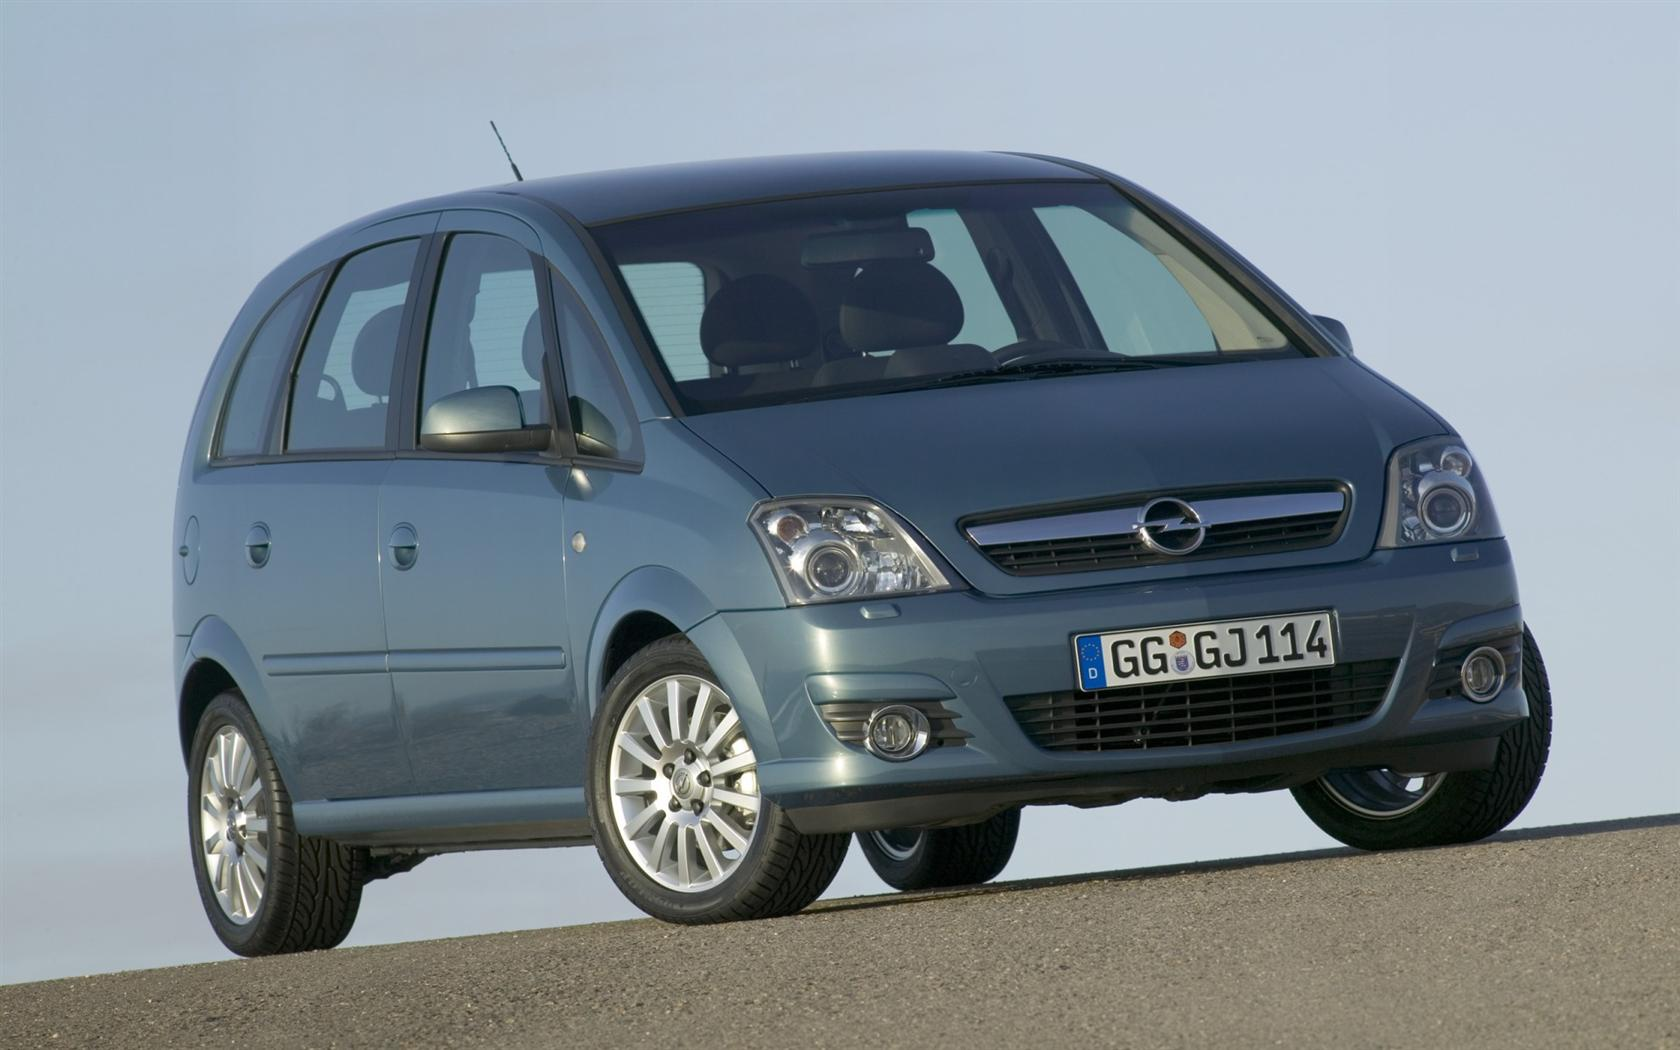 Opel Meriva Front likewise Peugeot Front in addition Image moreover Hqdefault furthermore F A D D C C E C A A C. on opel meriva 2009